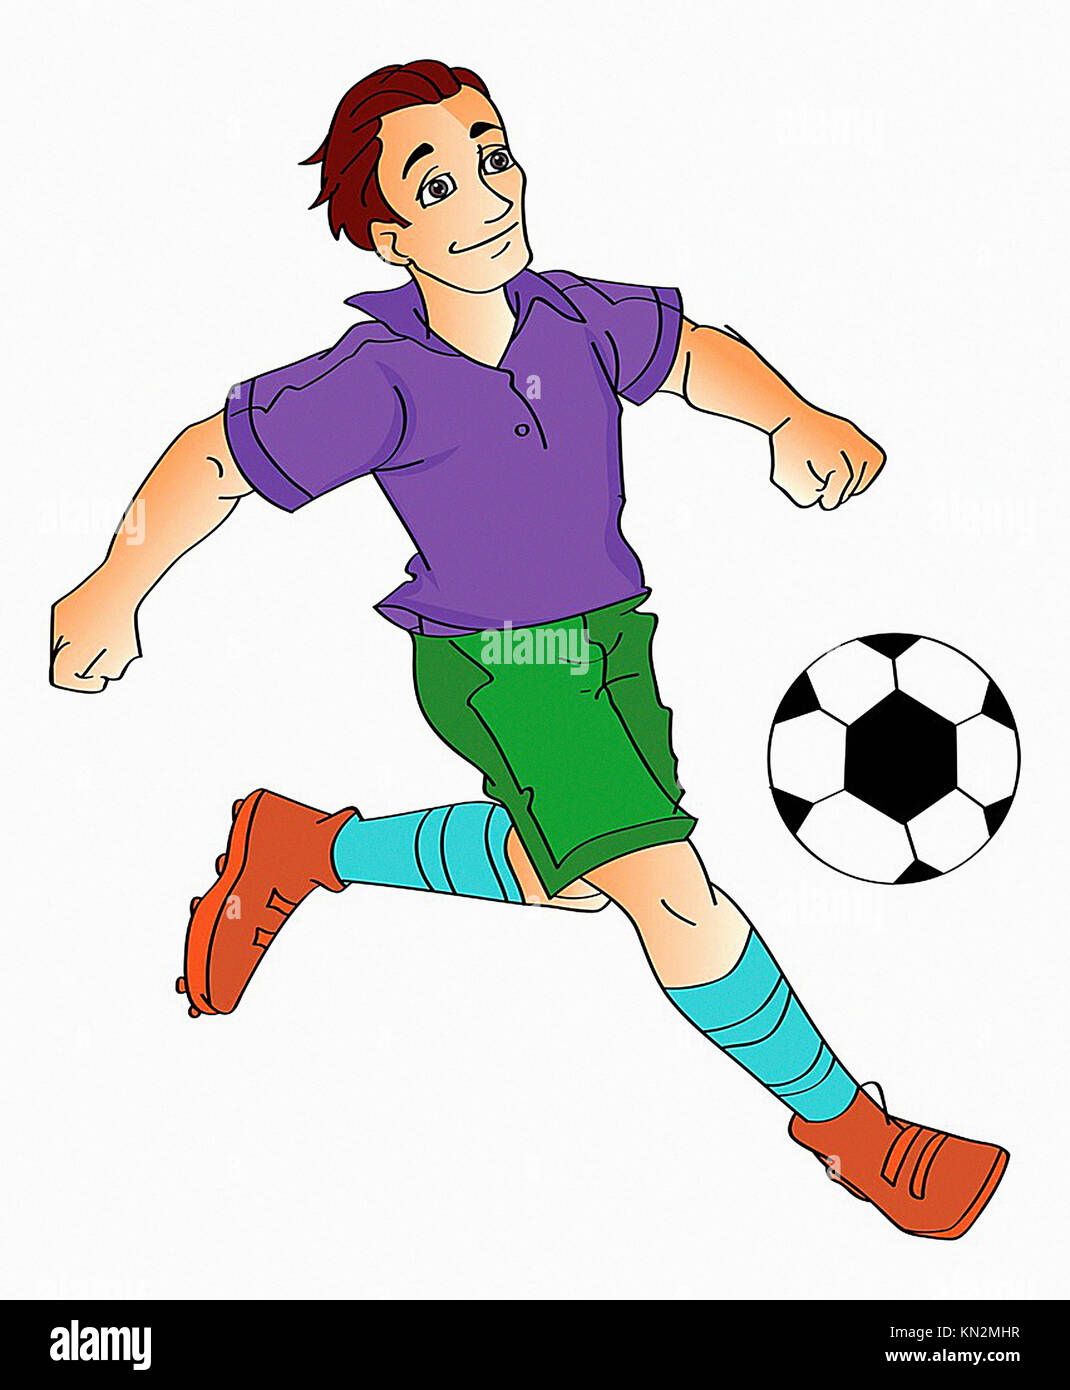 Jeune homme jouant au football, vector illustration Photo Stock